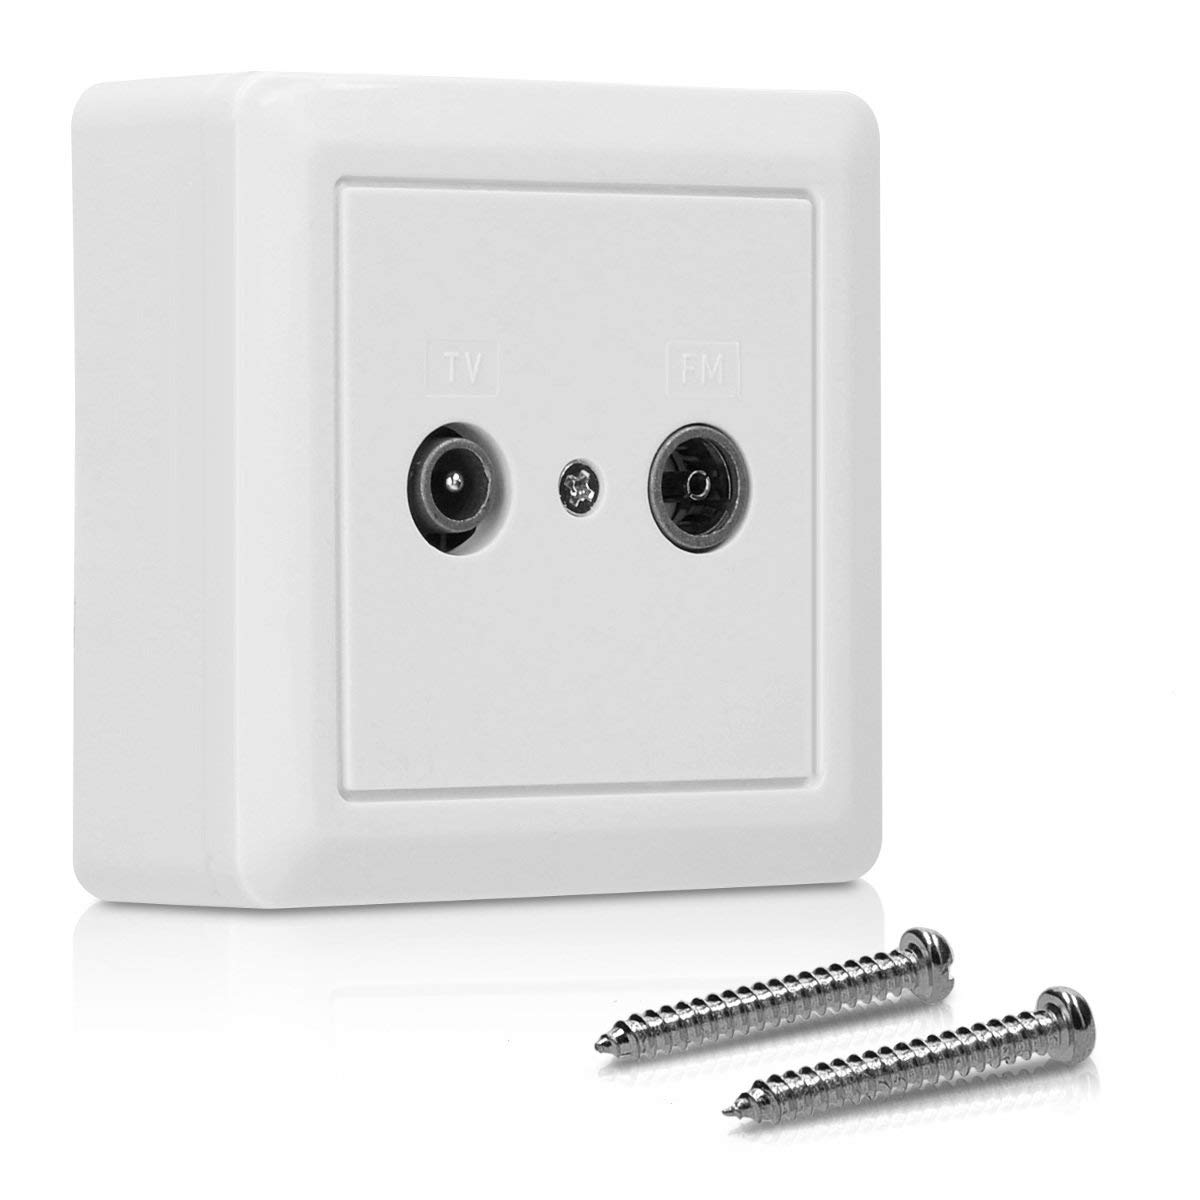 kwmobile Double TV/FM Wall Socket - Twin TV Aerial Socket Coaxial Connector for Television and Radio - Dual 2 Gang Aerial Wall Plug Plate in White